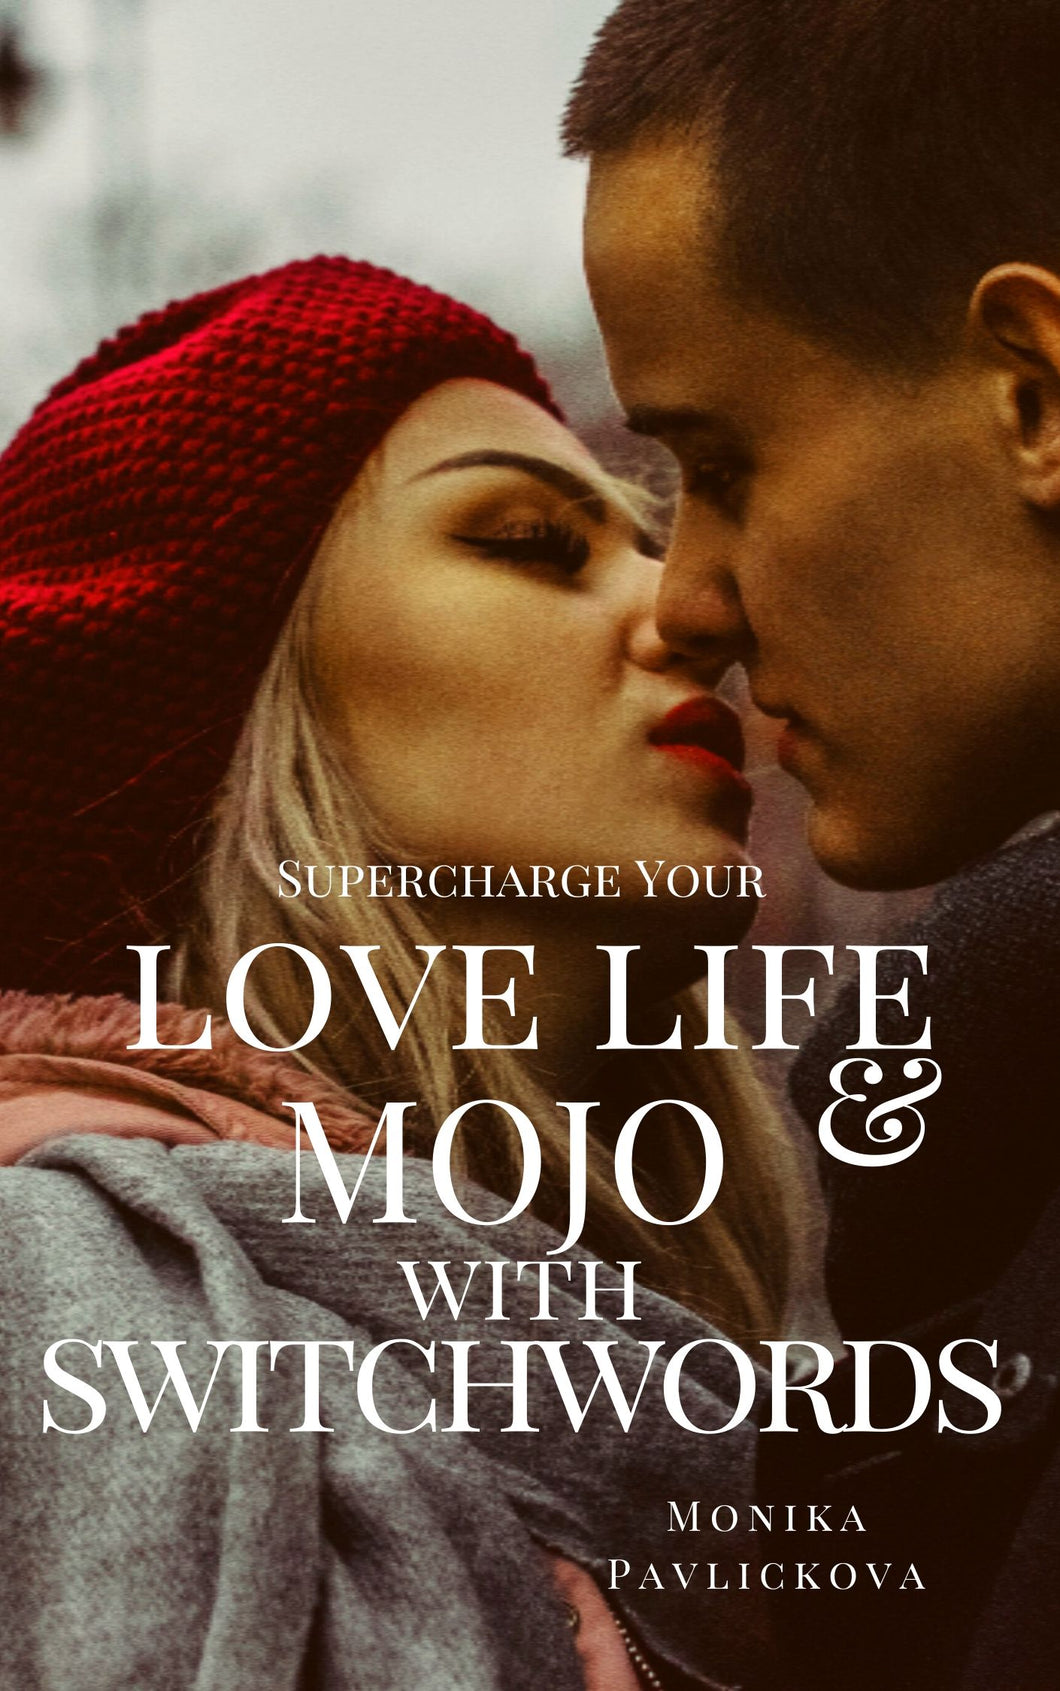 Supercharge Your Love Life & Mojo with Switchwords!: Become Love Magnet with Switchwords! (Switchwords Miracles Book 4) - Monika Pavlickova